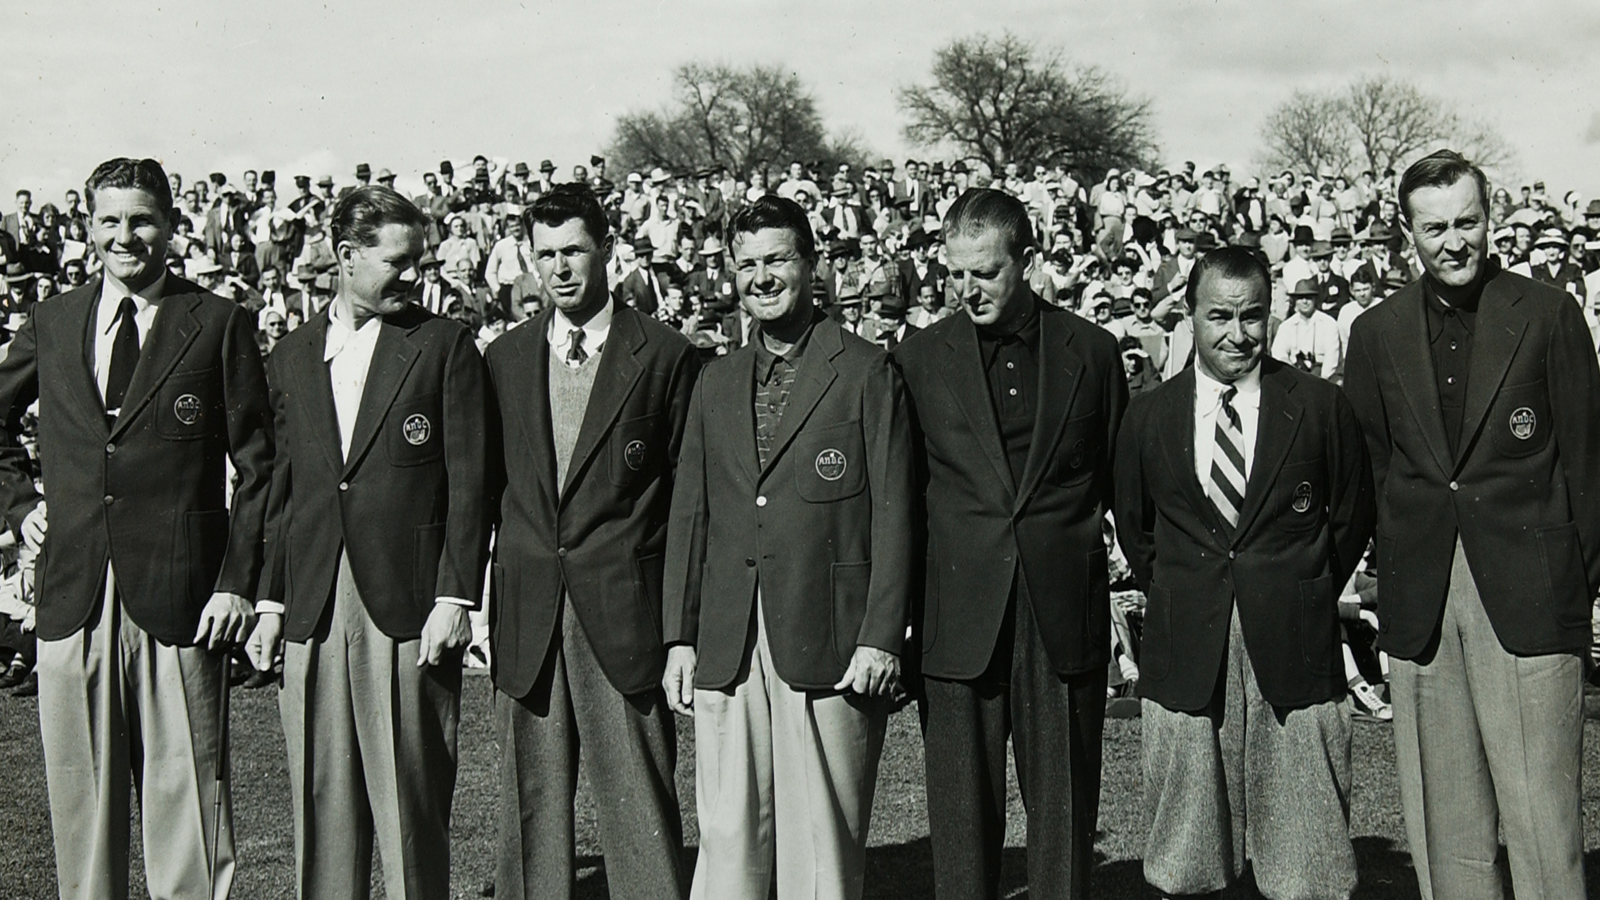 Horton Smith, Byron Nelson, Henry Picard, Jimmy Demaret, Craig Wood, Gene Sarazen, Herman Keiser at the 1947 Masters.